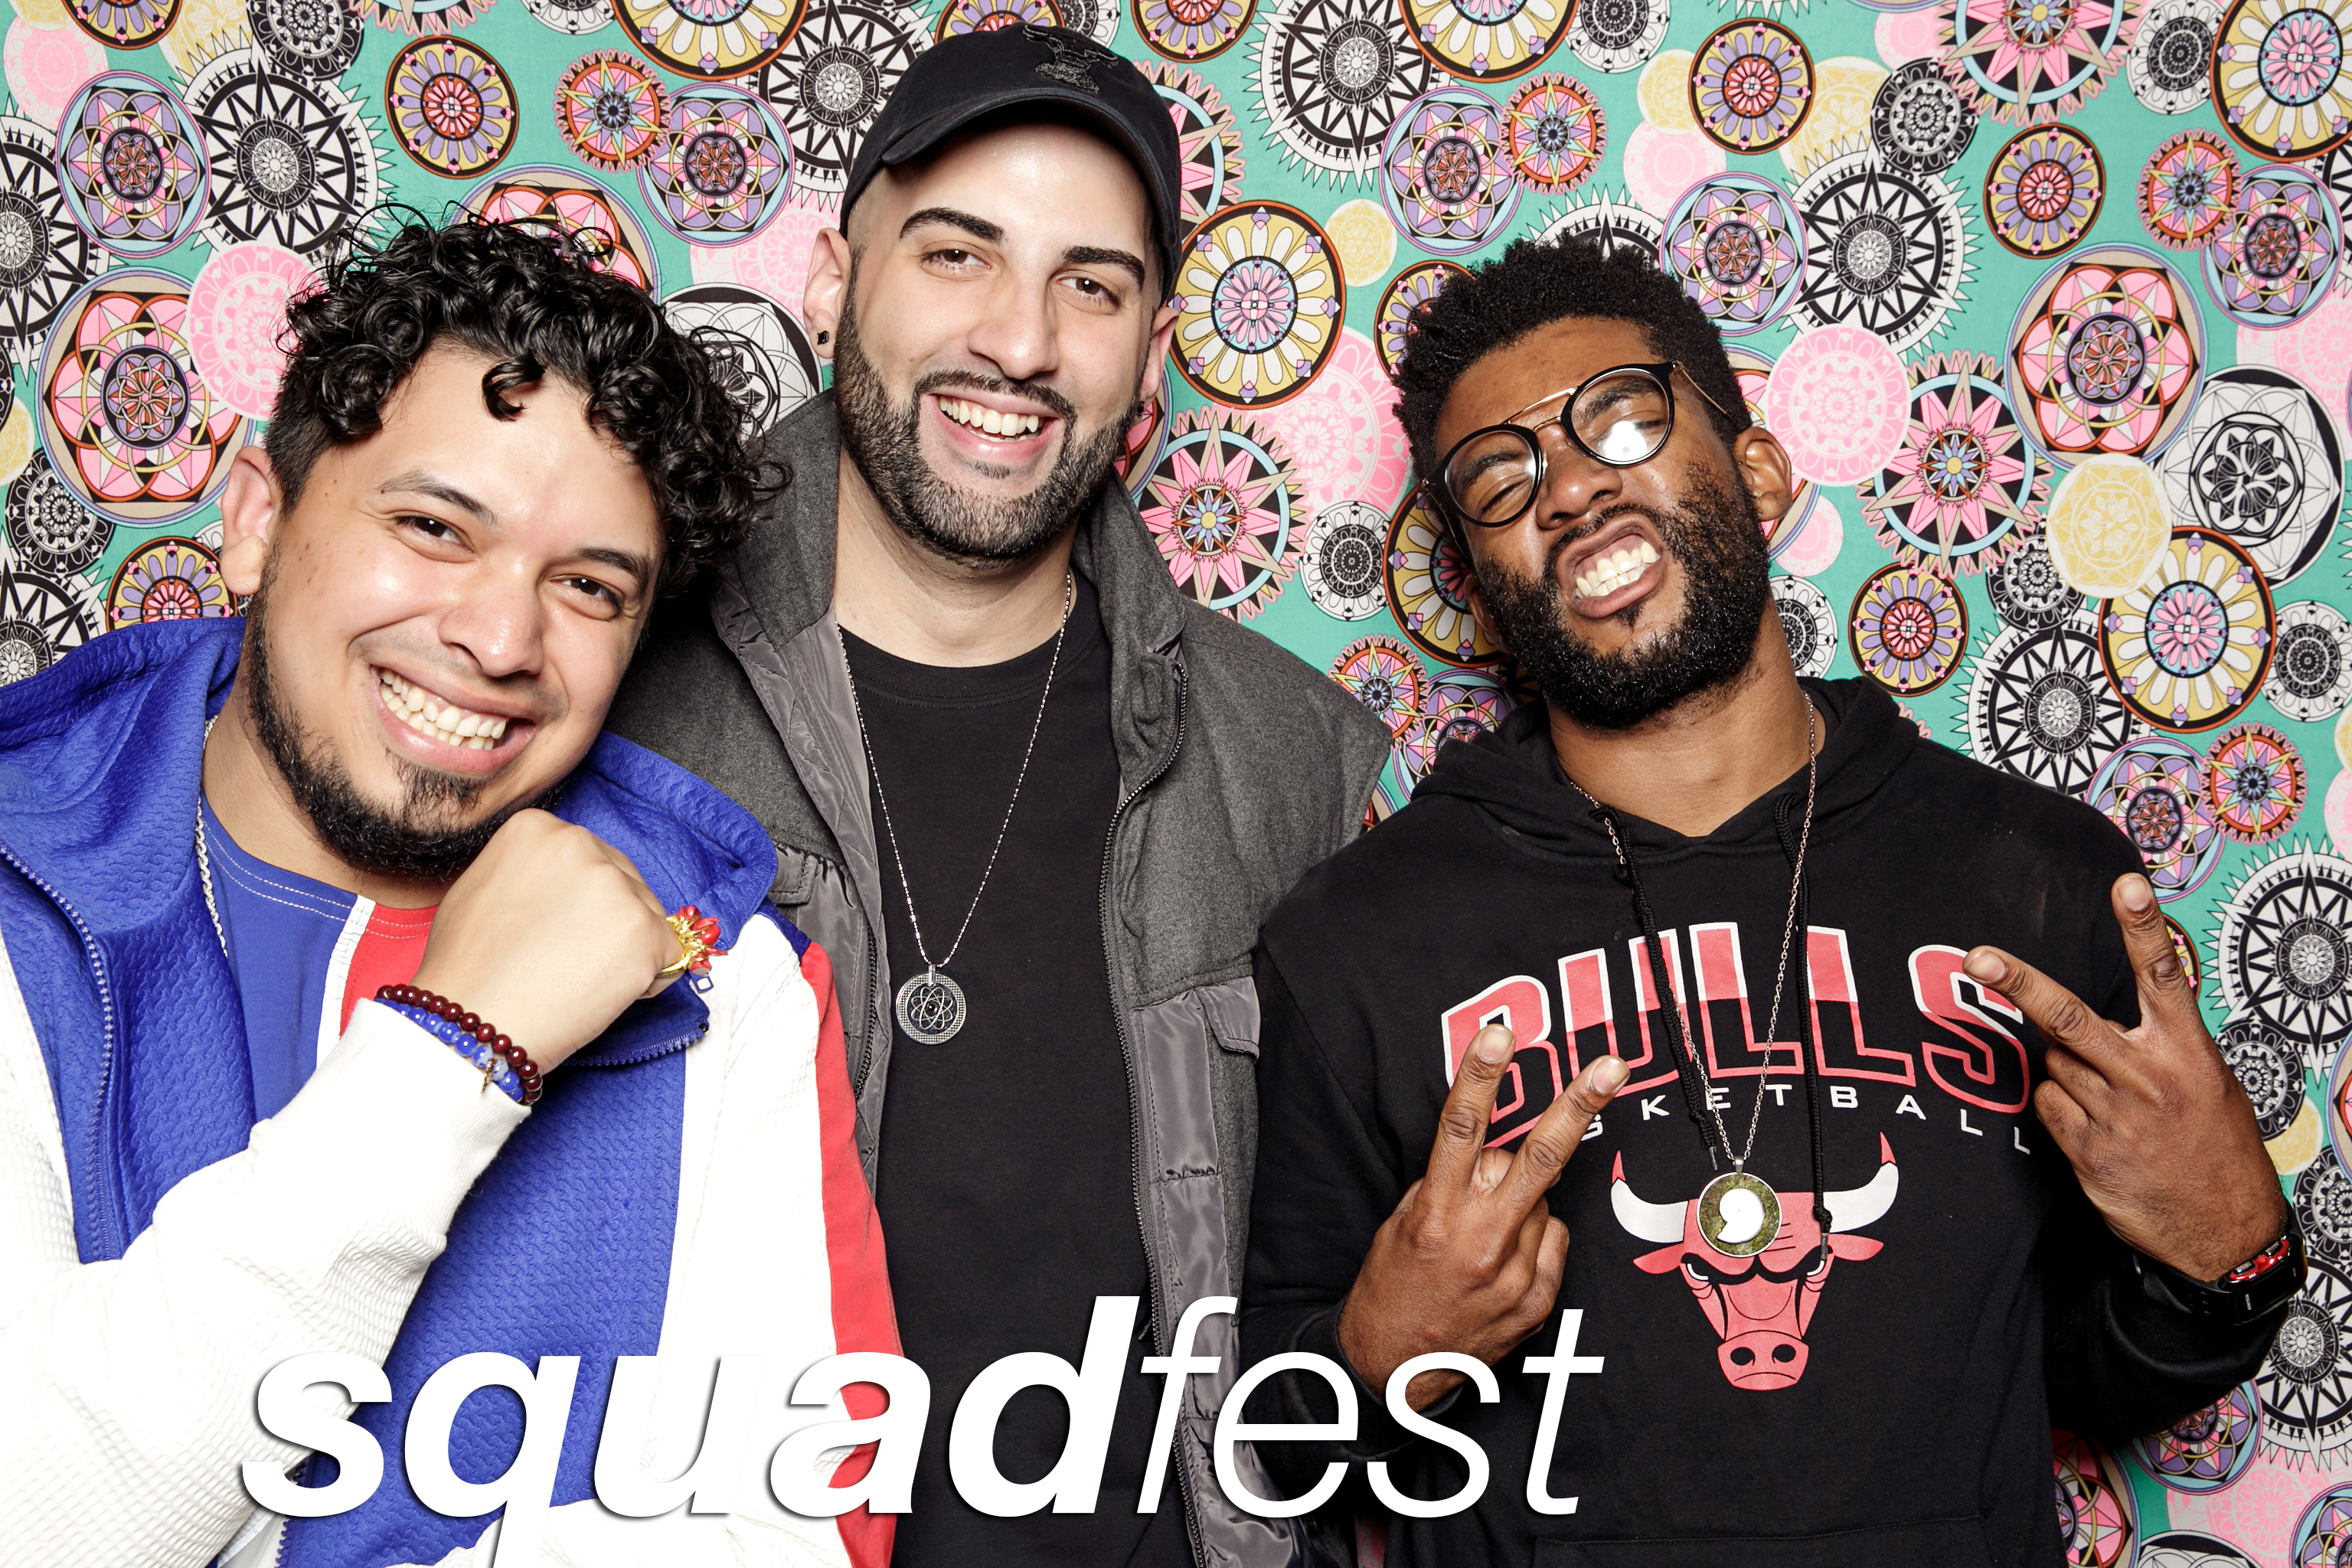 portrait booth photos from the dojo's squadfest, october 2017